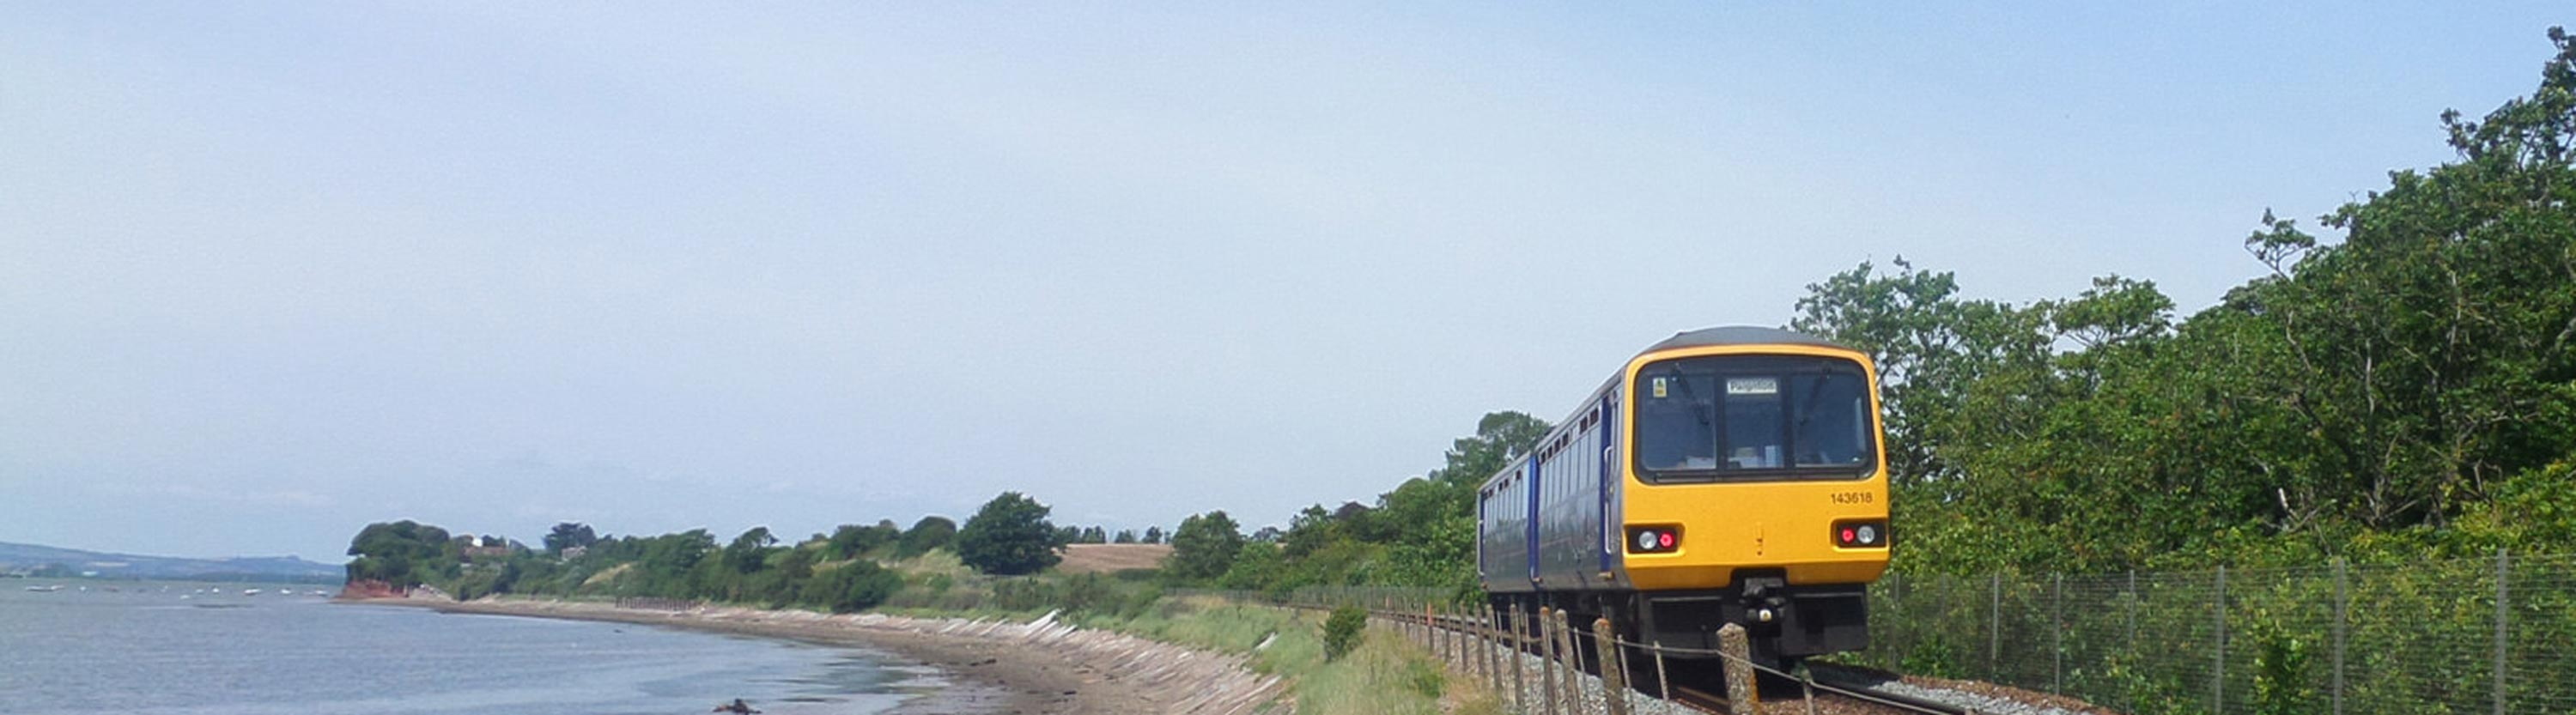 Train on Avocet Line - photo by Mark Lynam